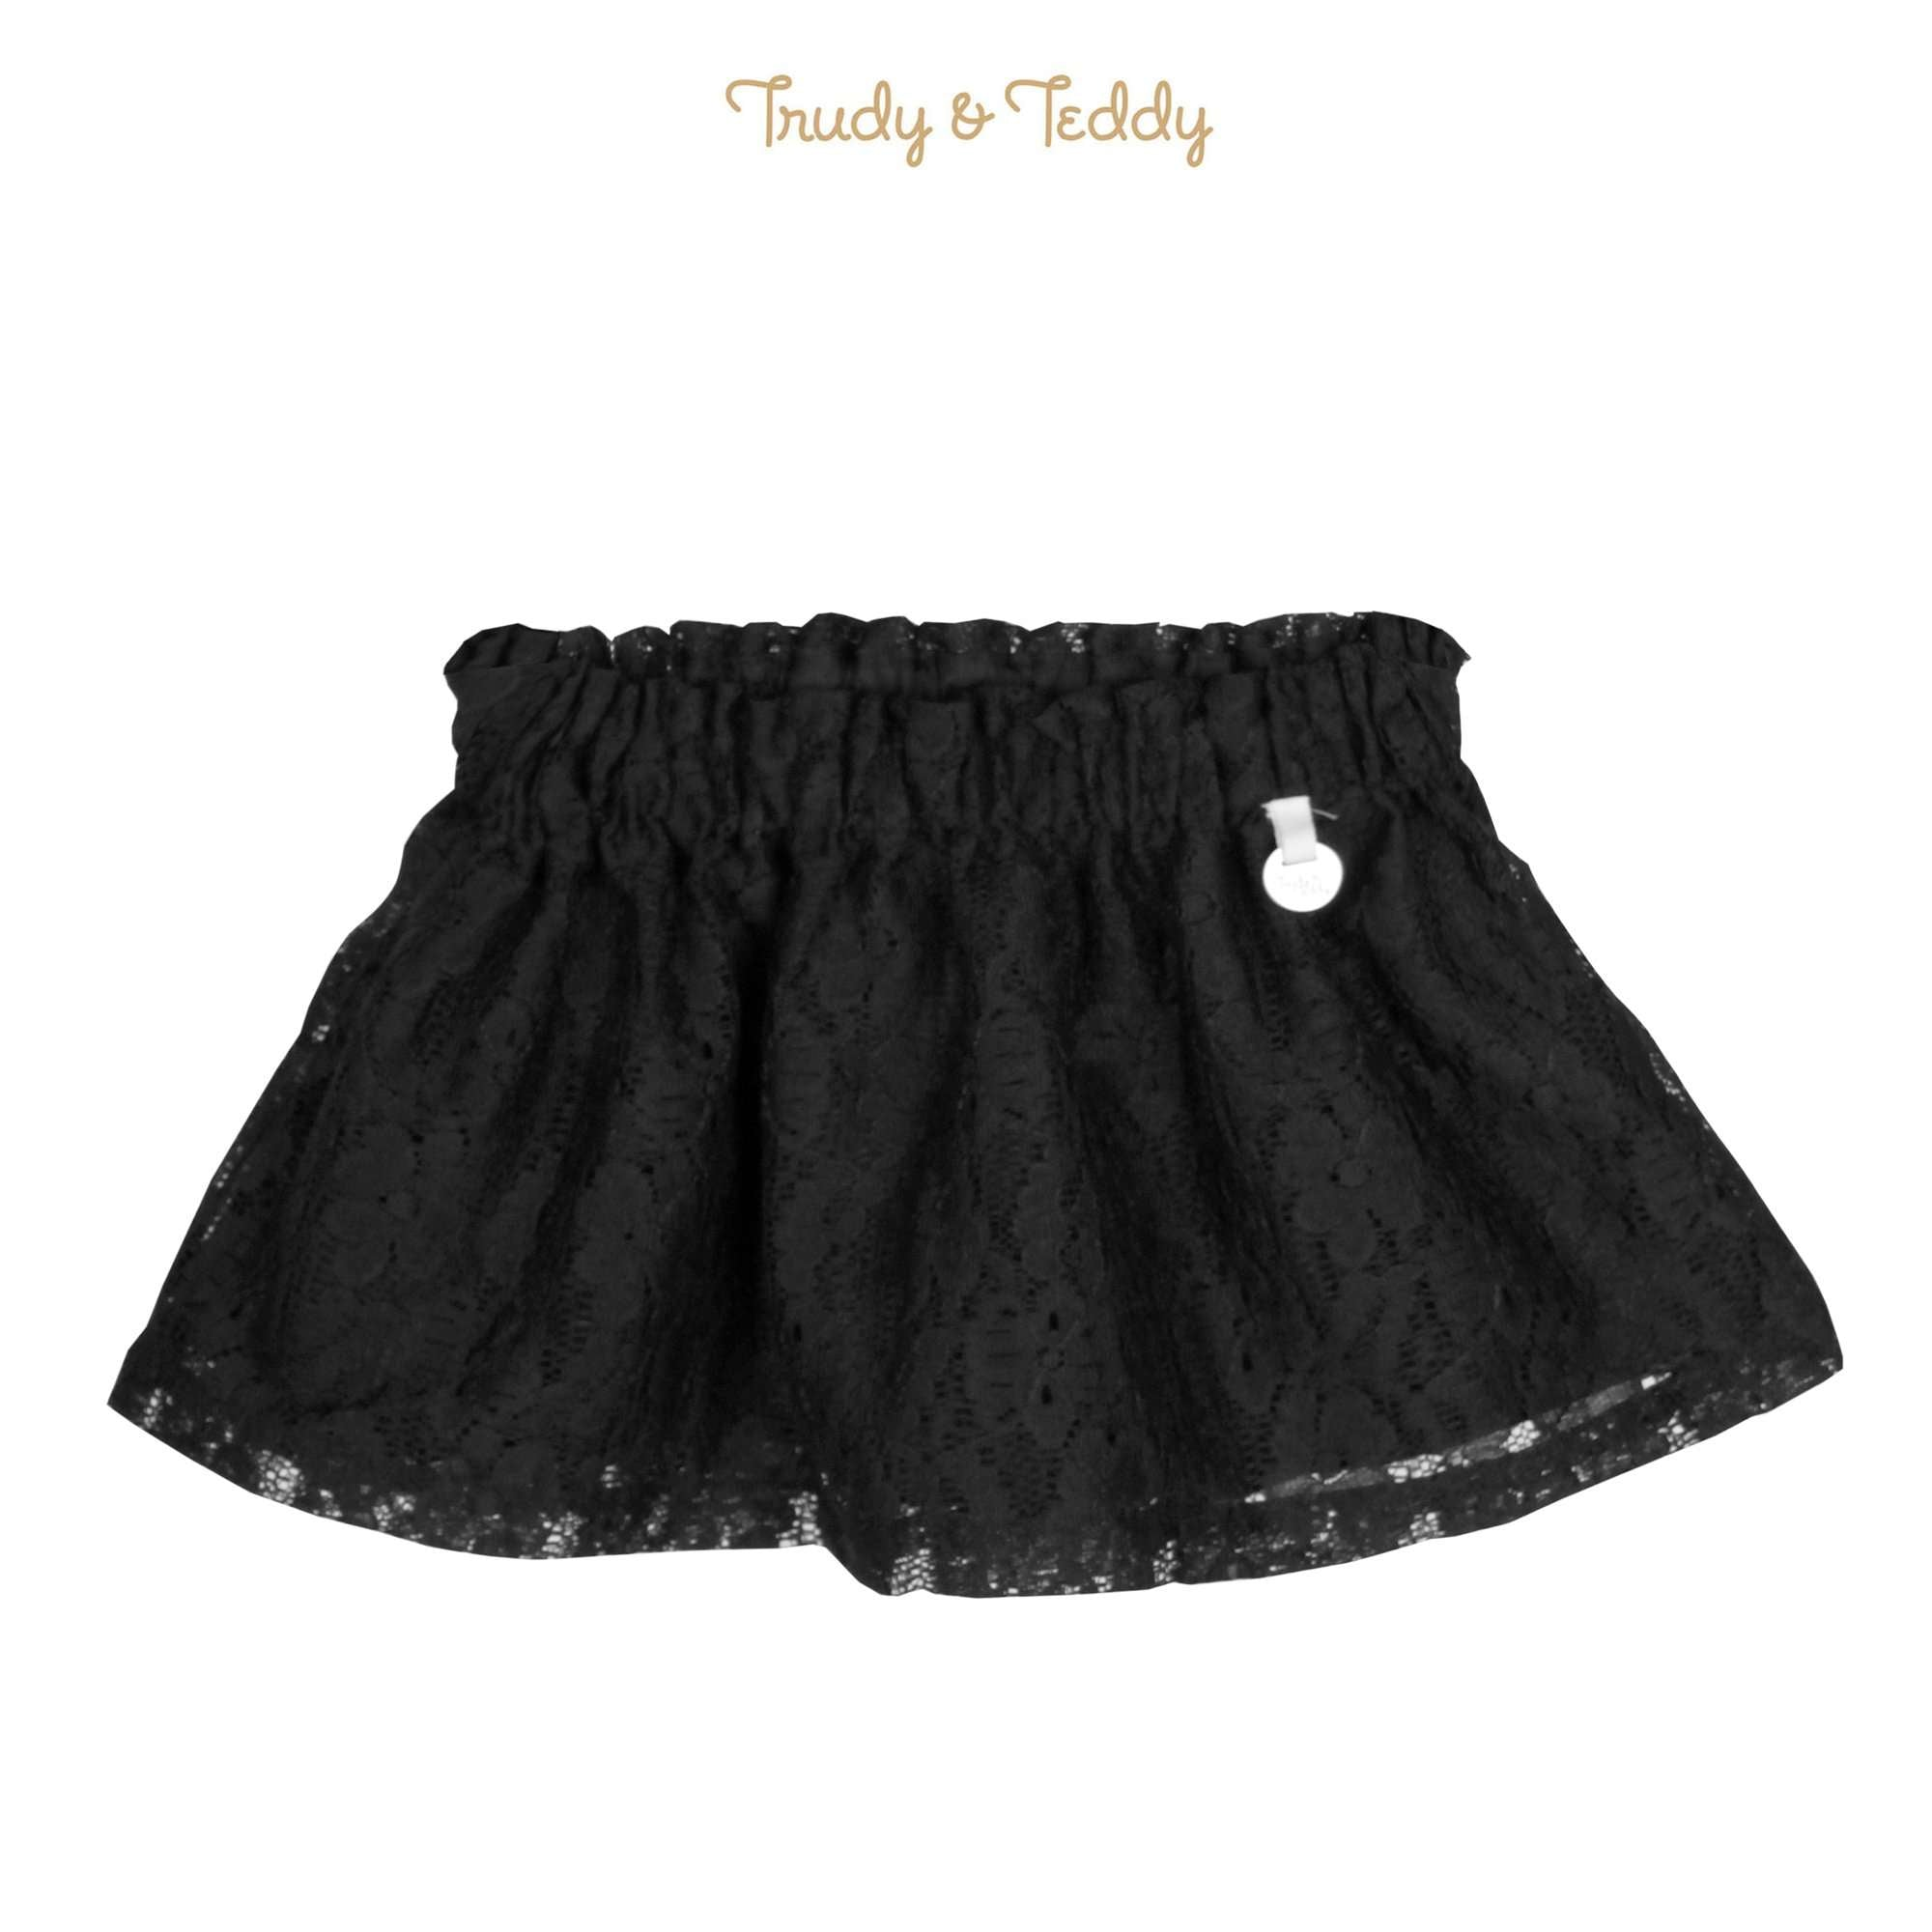 Trudy & Teddy Toddler Girl Skirt 815143-261 : Buy Trudy & Teddy online at CMG.MY